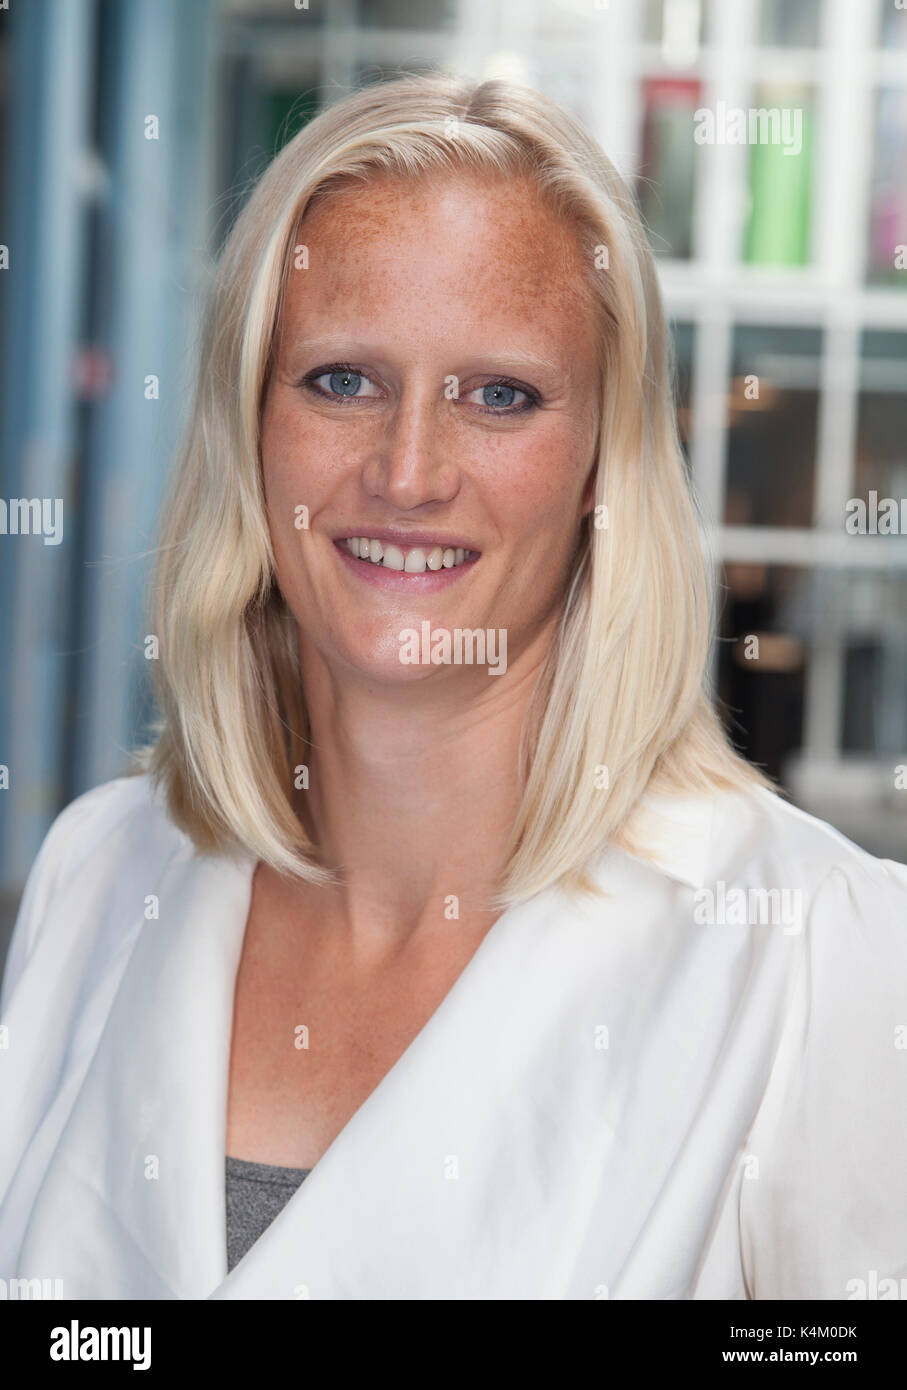 CAROLINA KLÜFT Swedish heptathlon athlete and television host 2017 - Stock Image